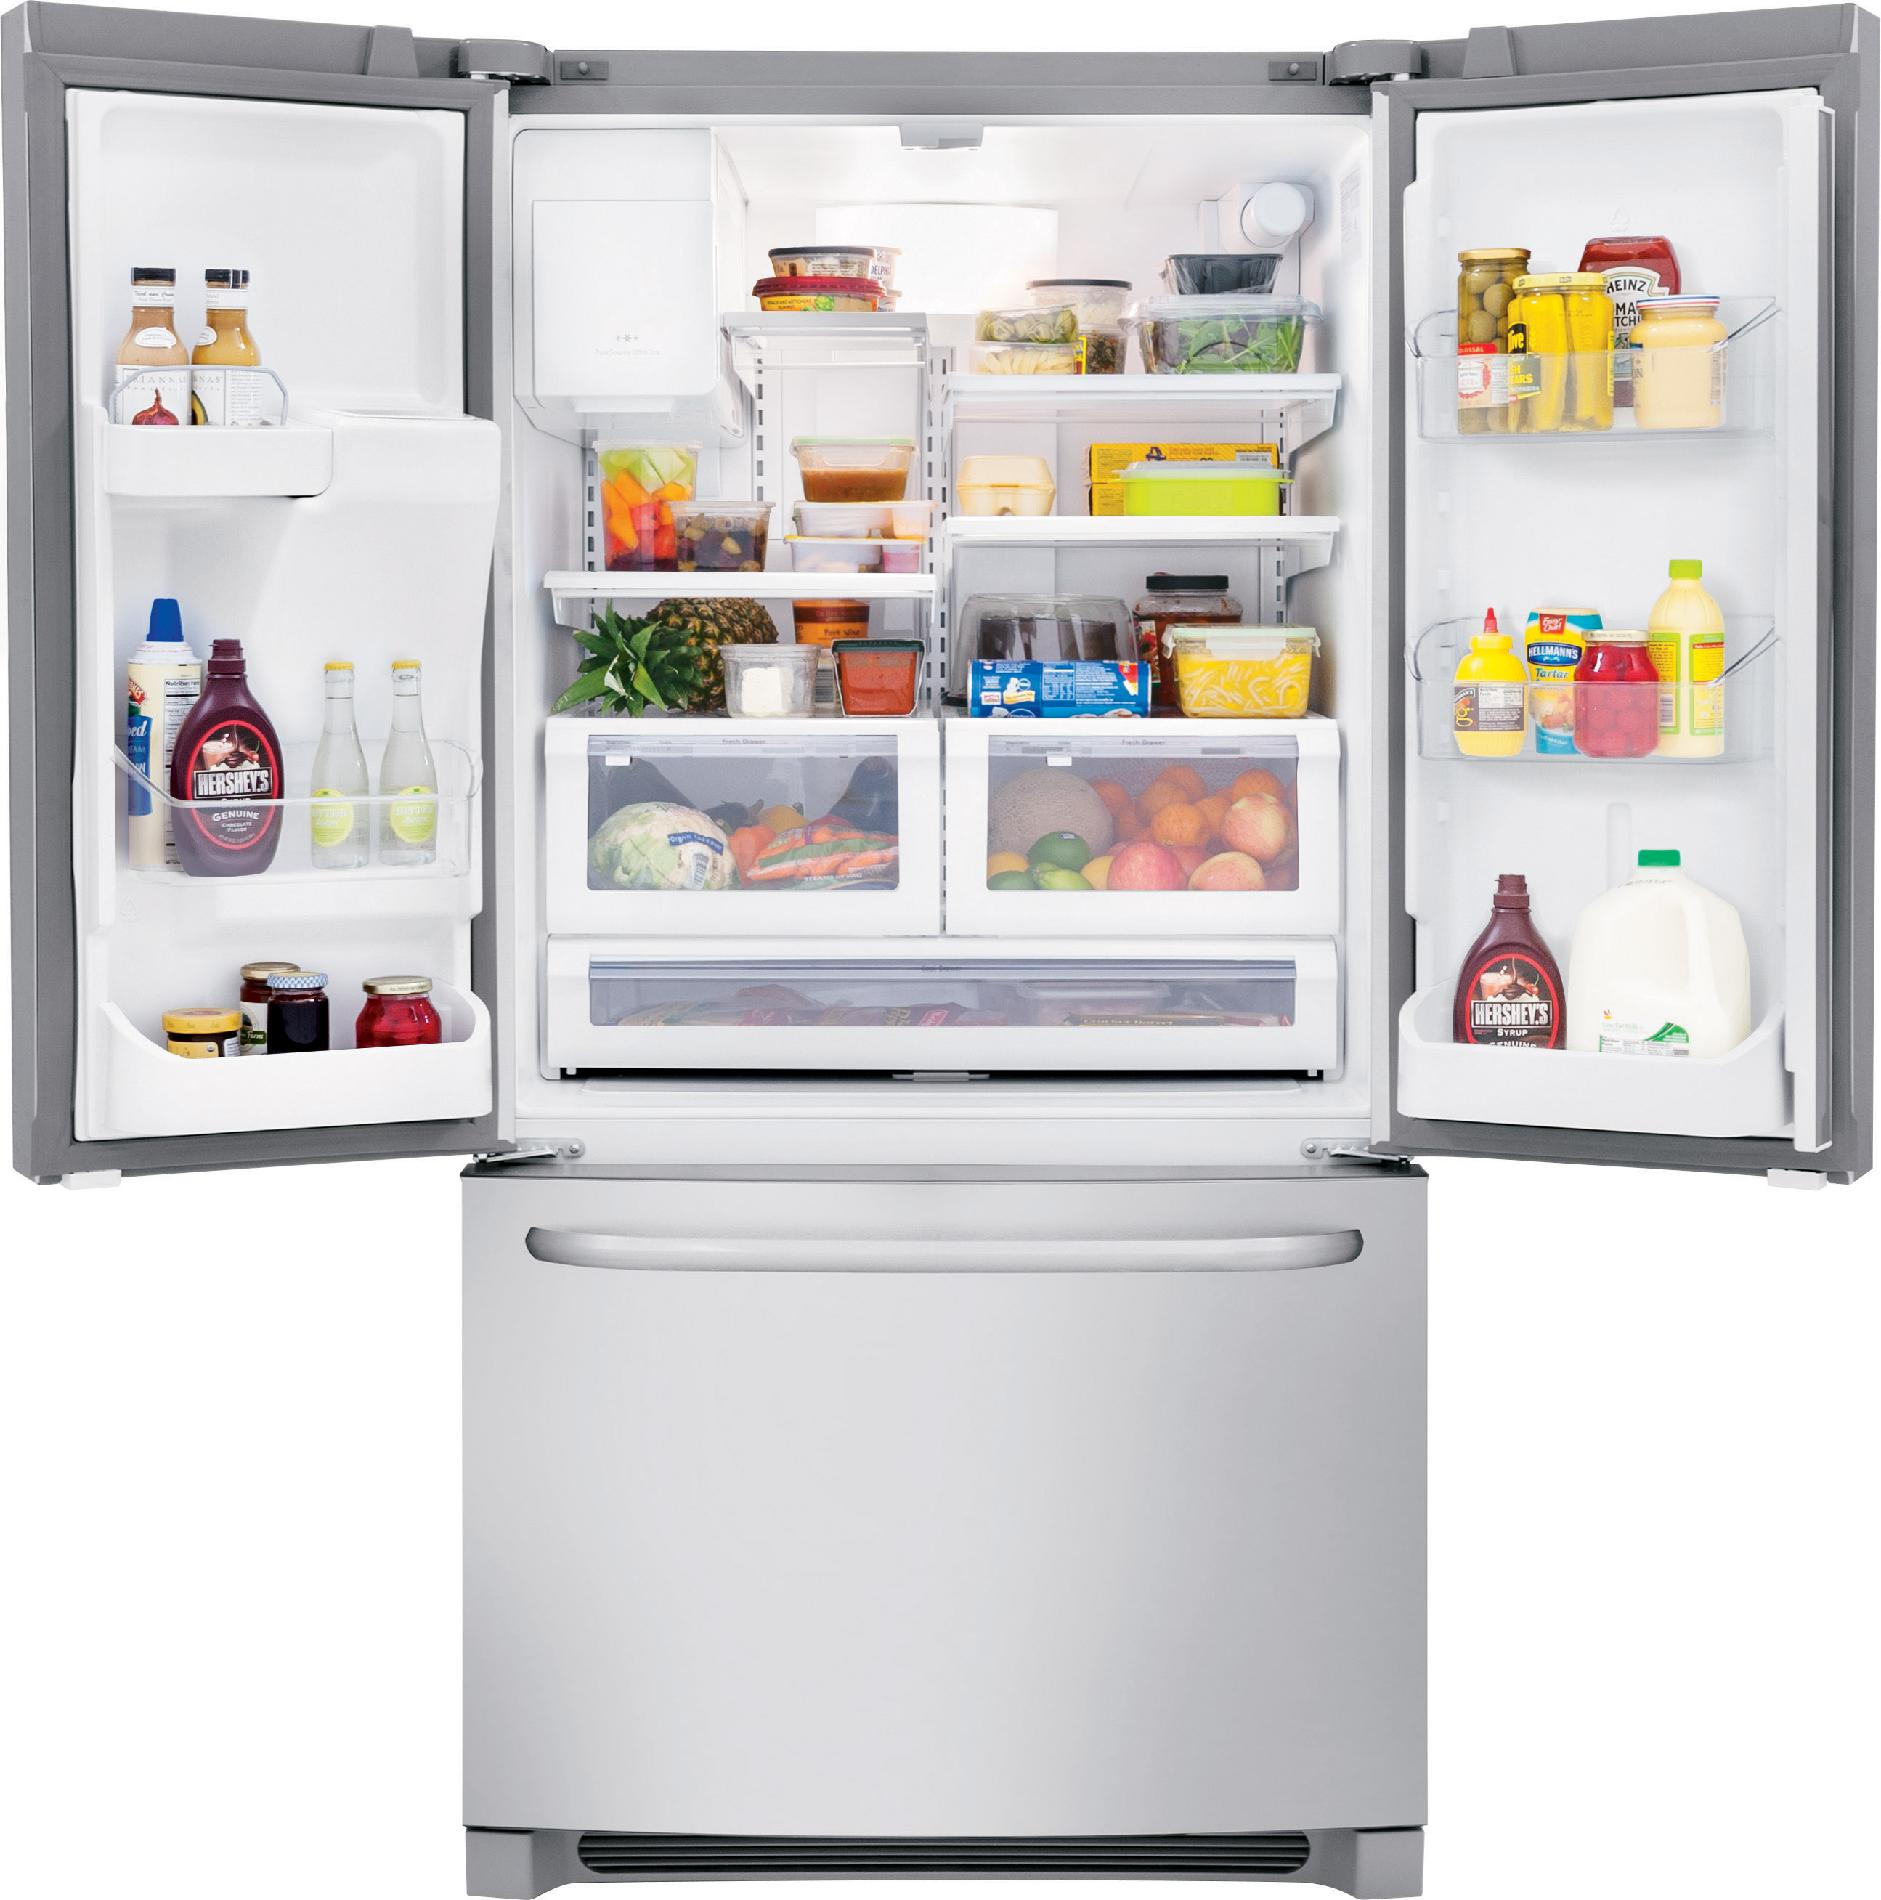 Frigidaire 26.7 cu. ft. French Door Refrigerator - Stainless Steel